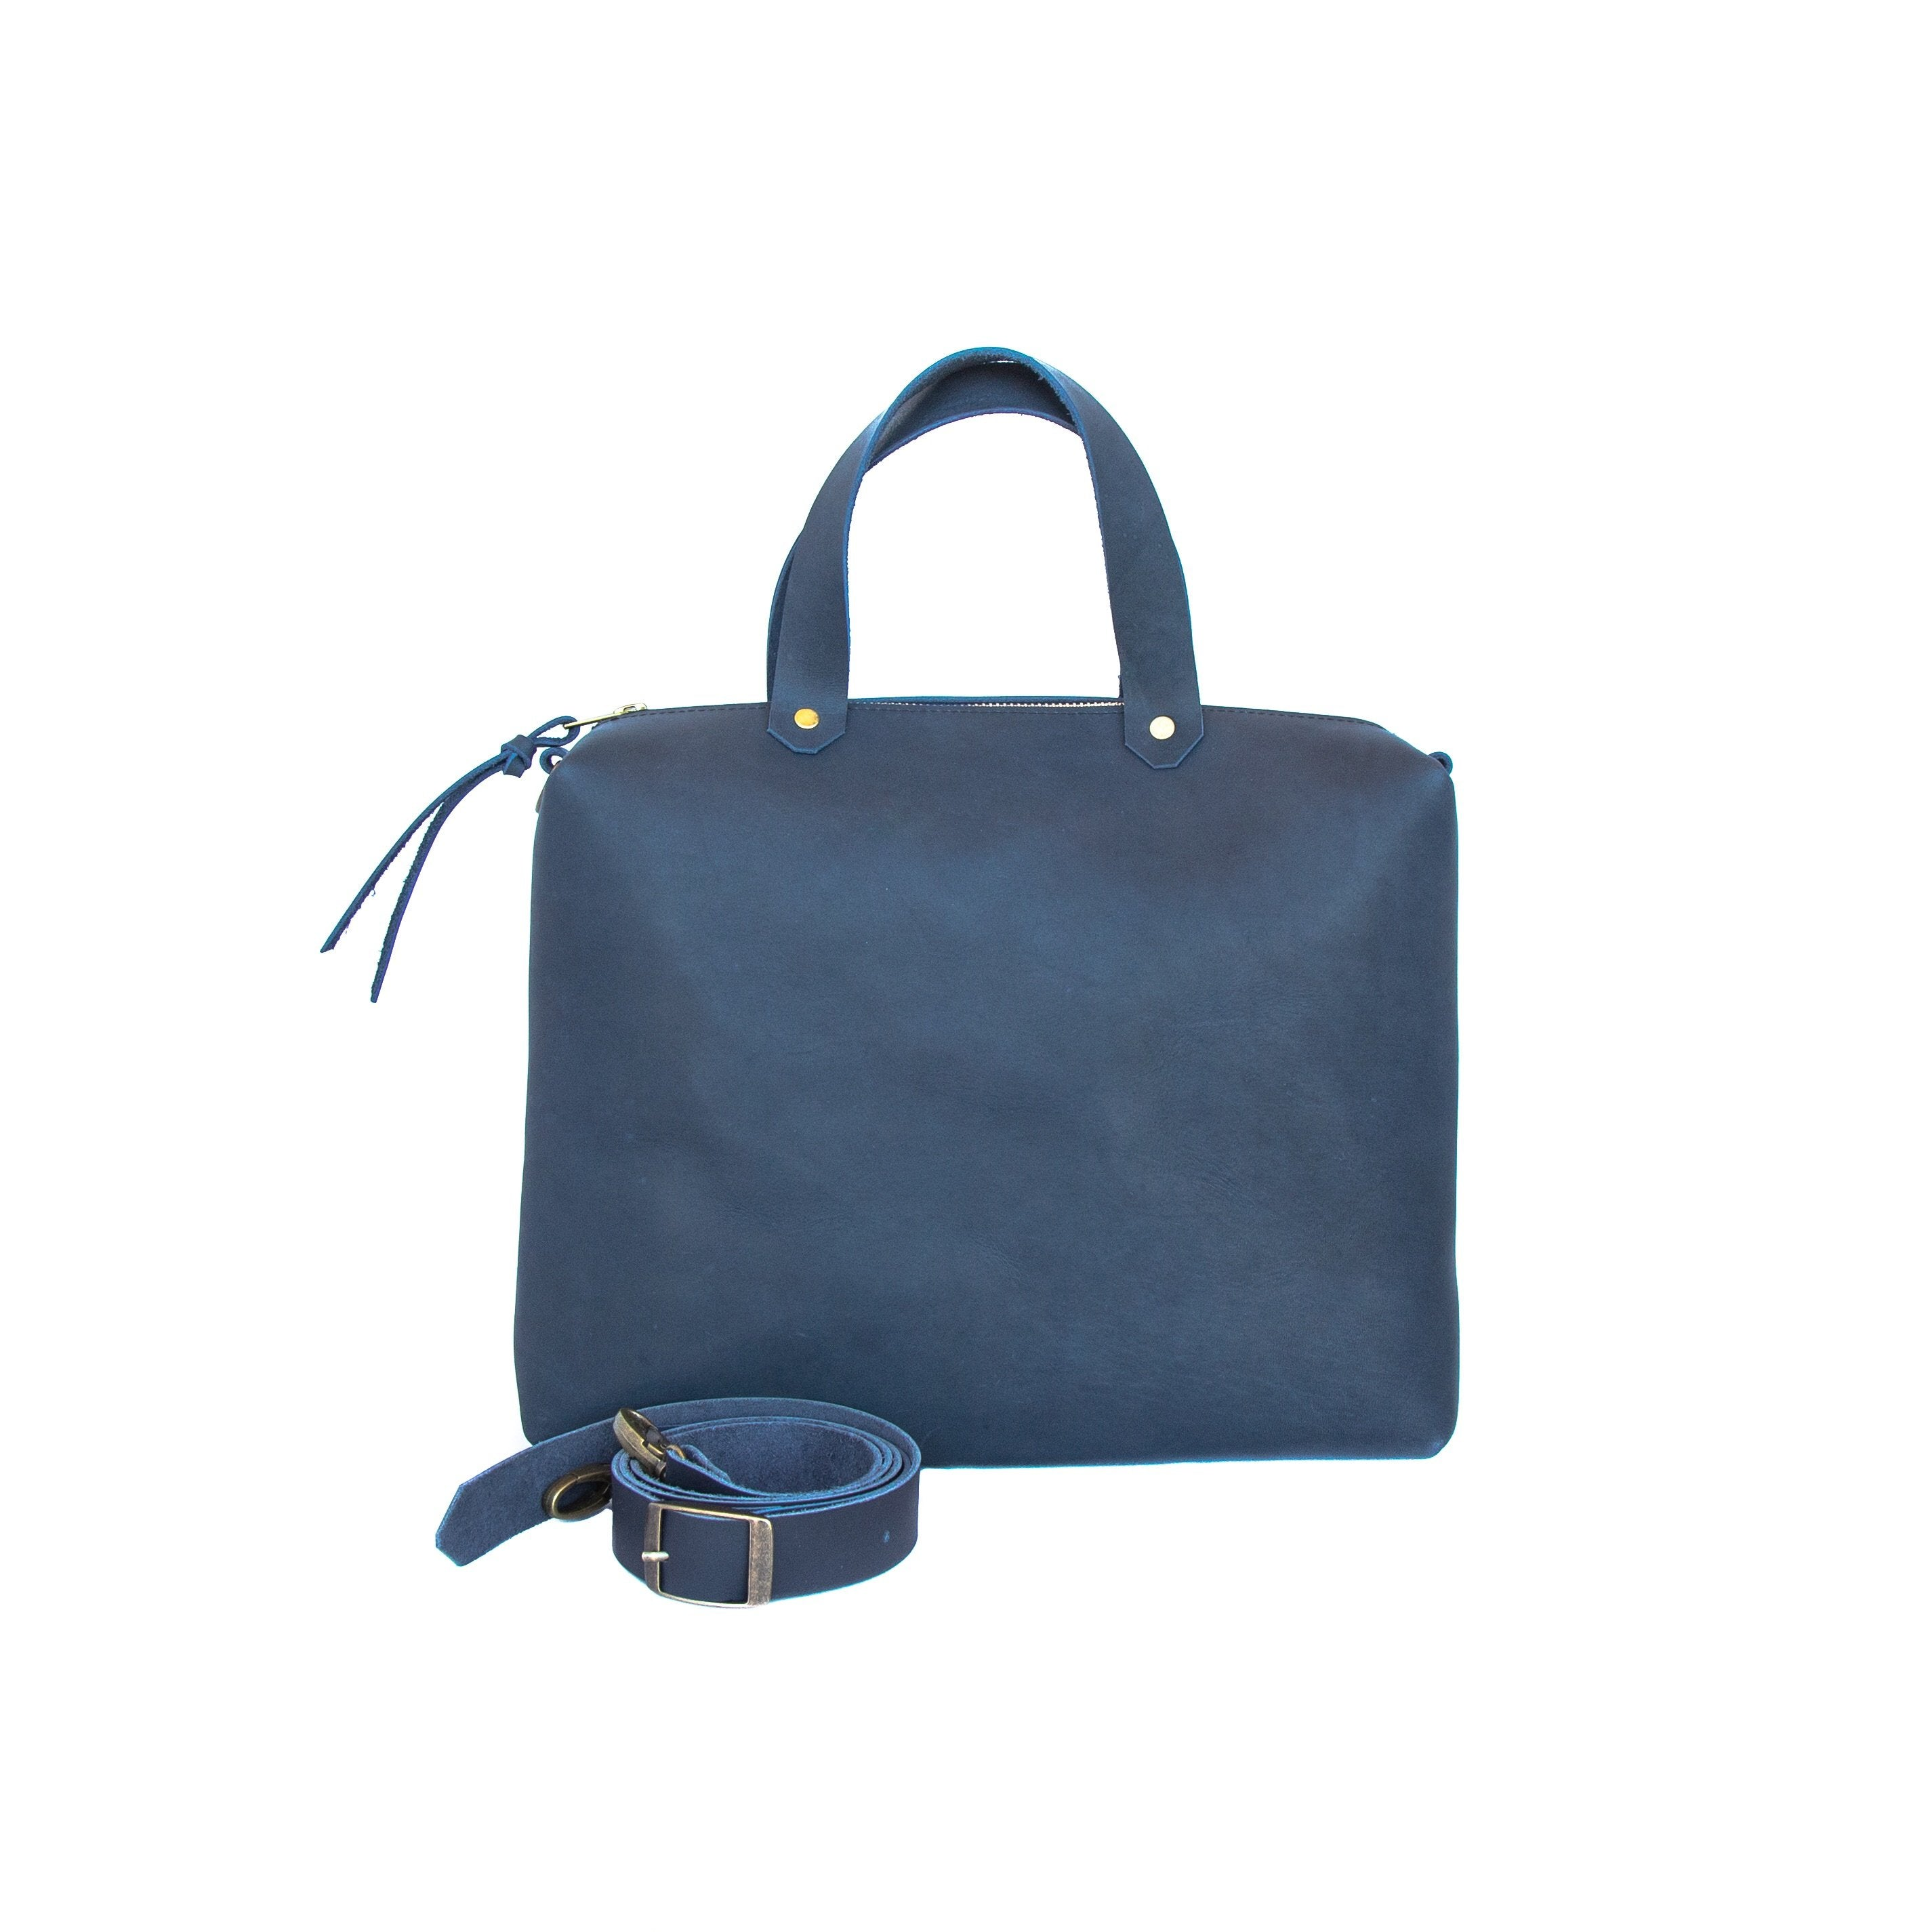 Spy Bag Leather - handcrafted by Market Canvas Leather in Tofino, BC, Canada